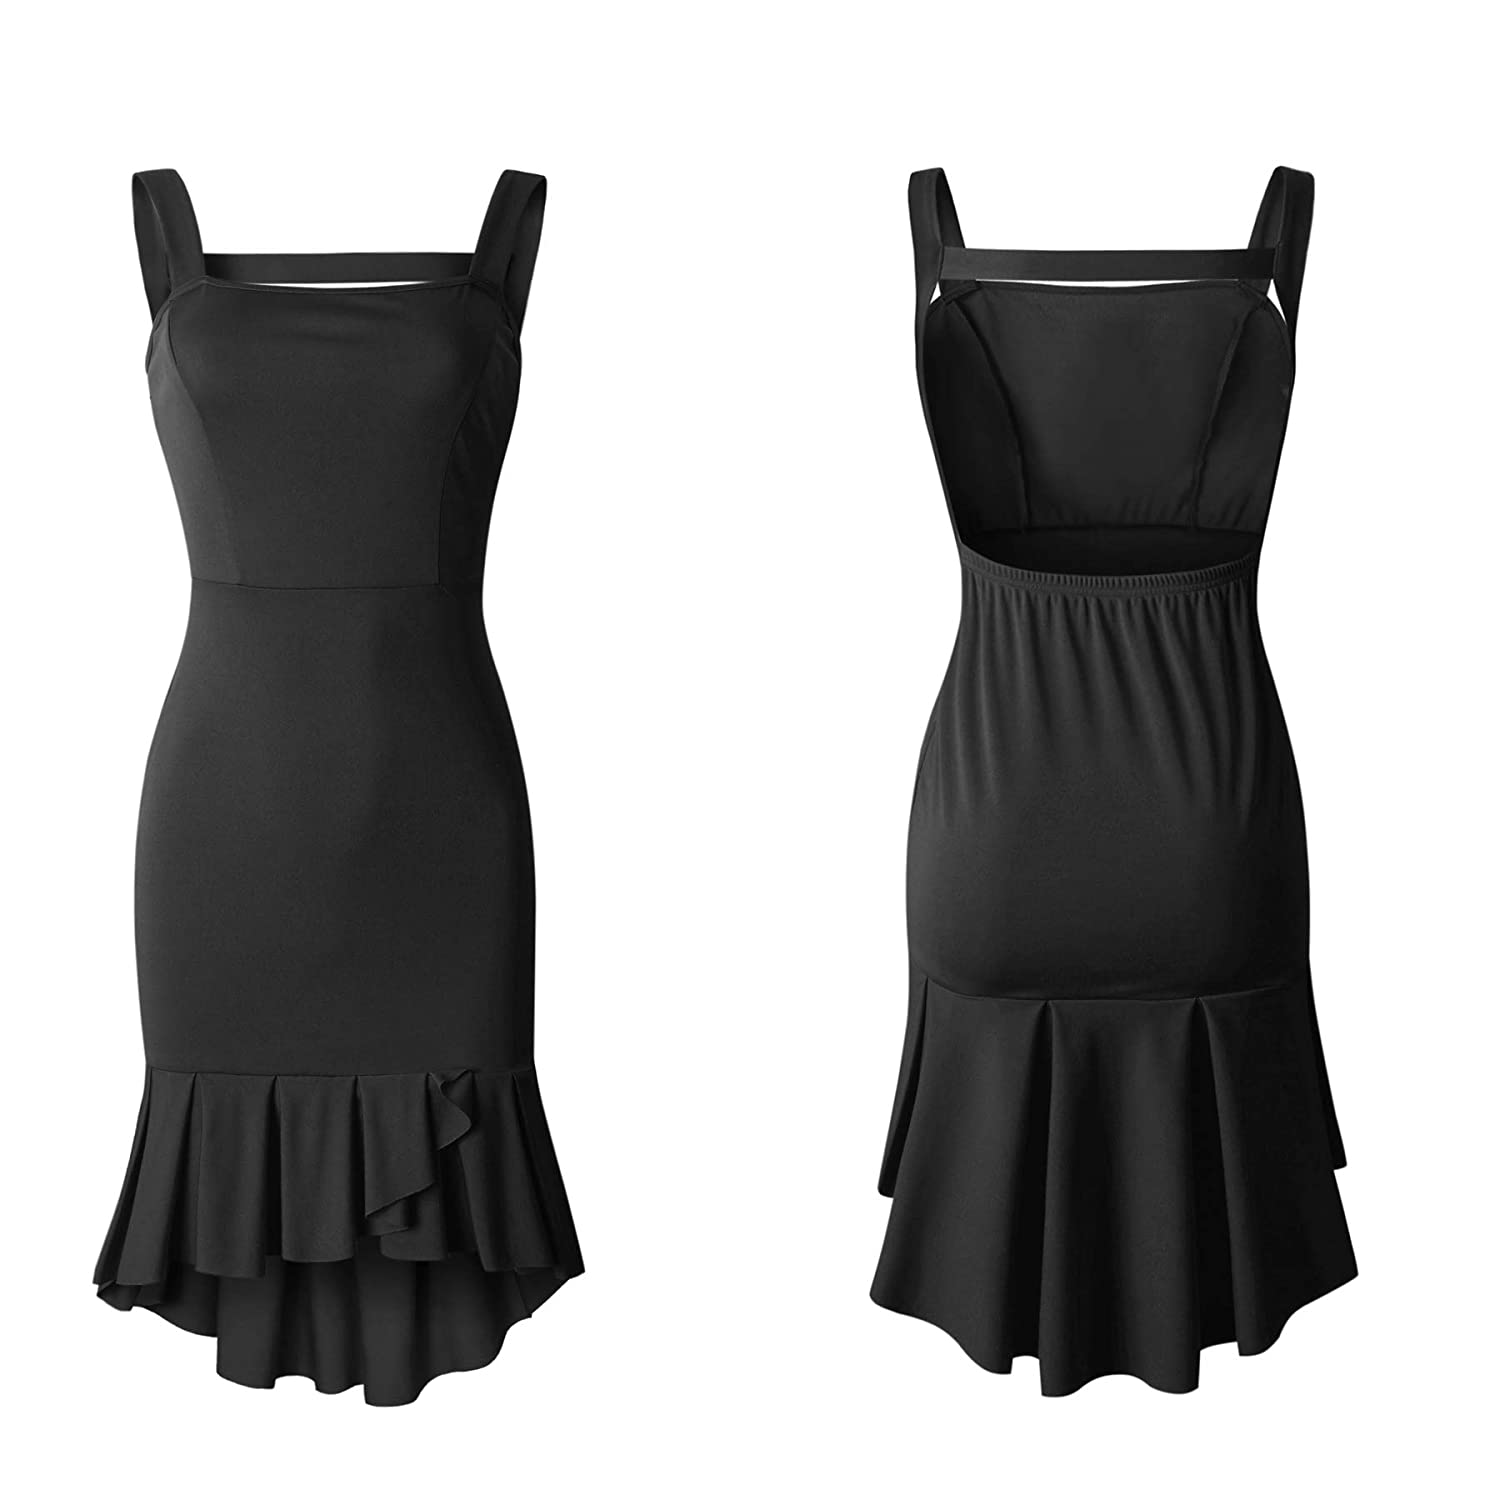 6a526dff264 Ecowish Womens Bodycon Backless Cocktail Dress Sleeveless Ruffled Wrap High  Low Sundress  Amazon.co.uk  Clothing